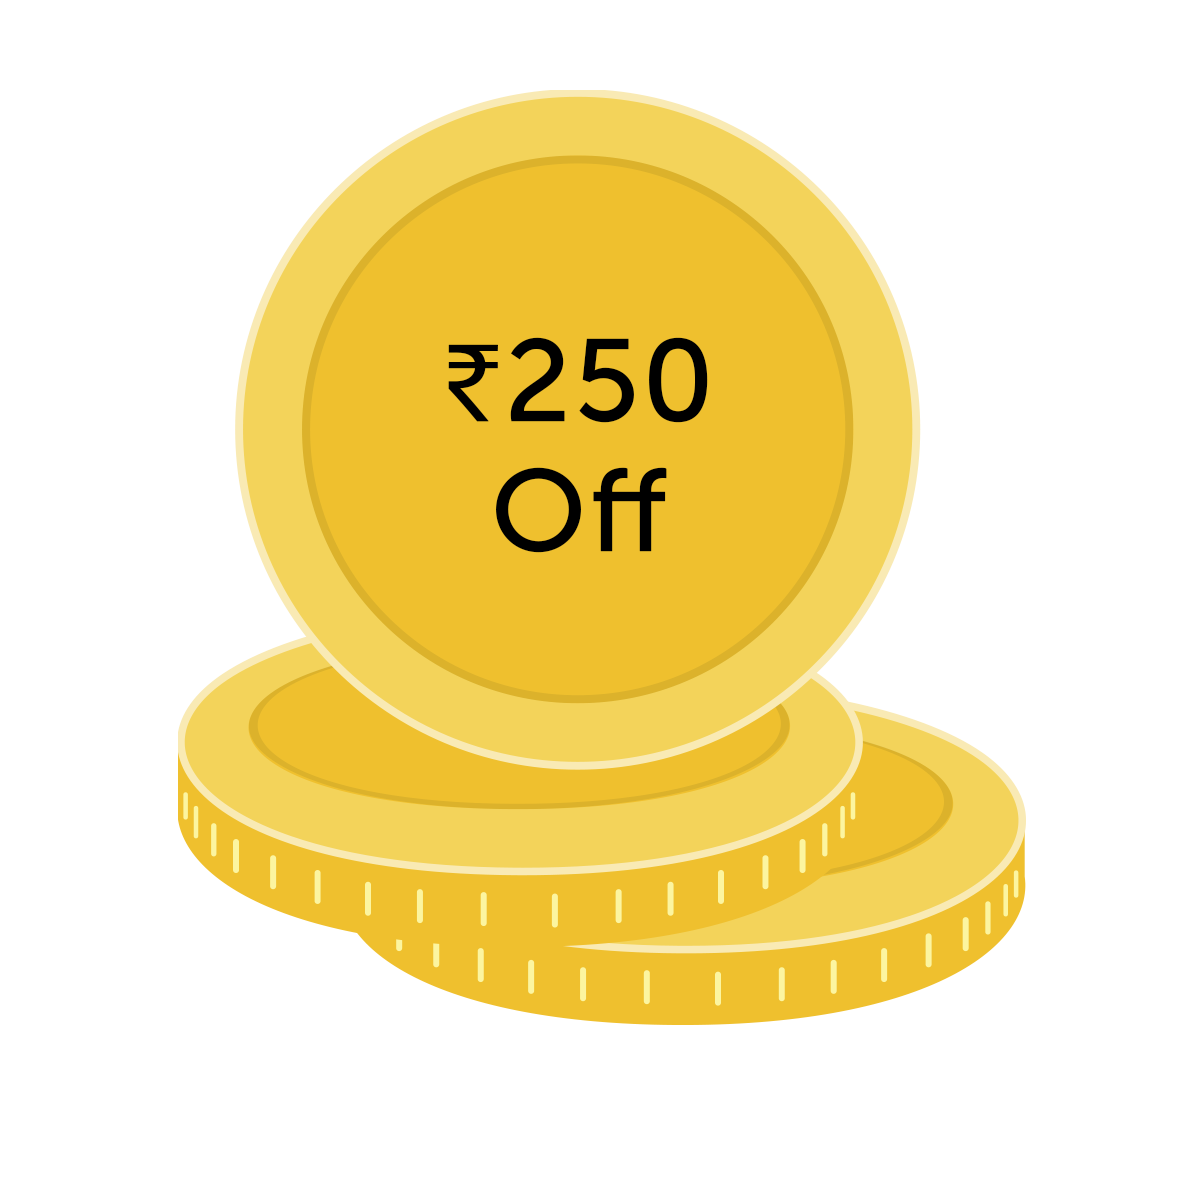 ₹250 off coupon for 2500 Coins